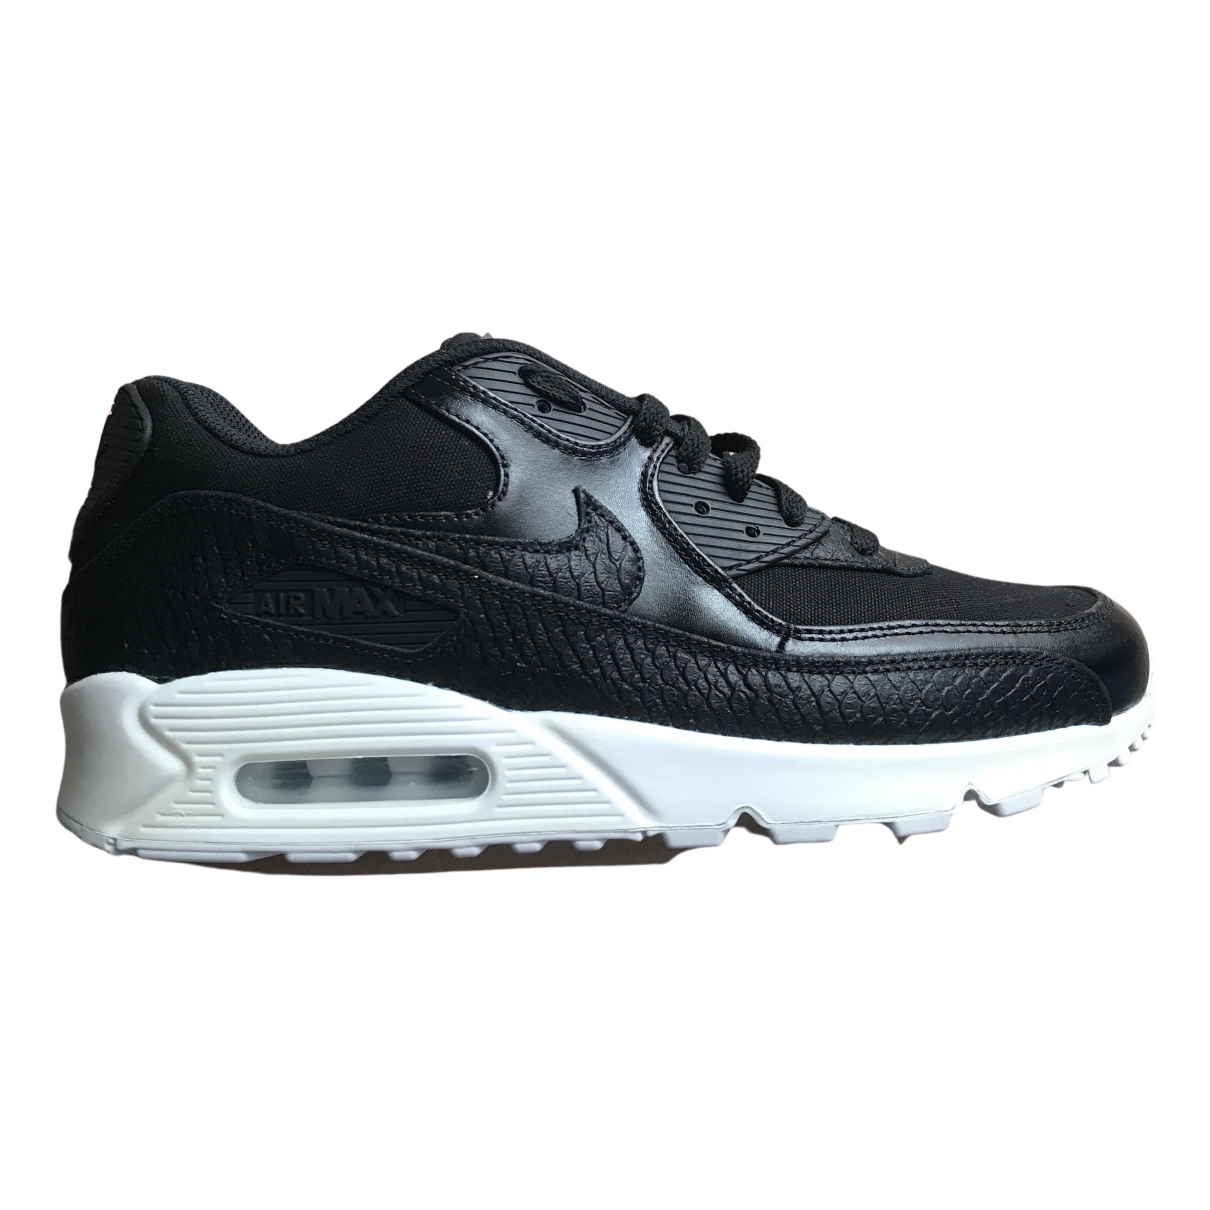 Nike Air Max 90 Sneakers in  Schwarz Leder